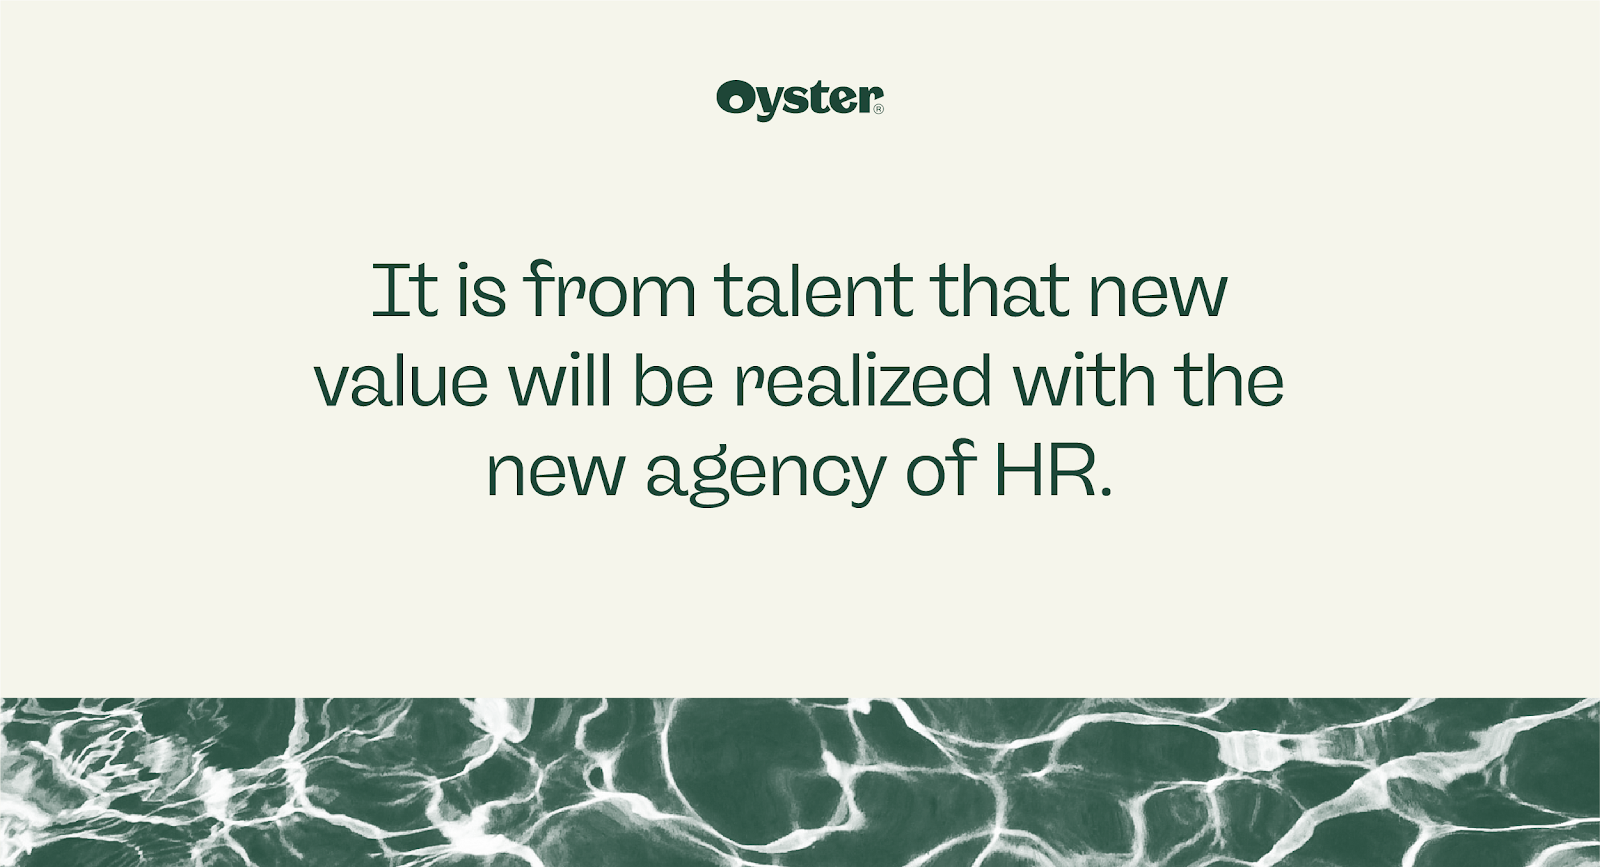 It is from talent that new value will be realized with the new agency of HR